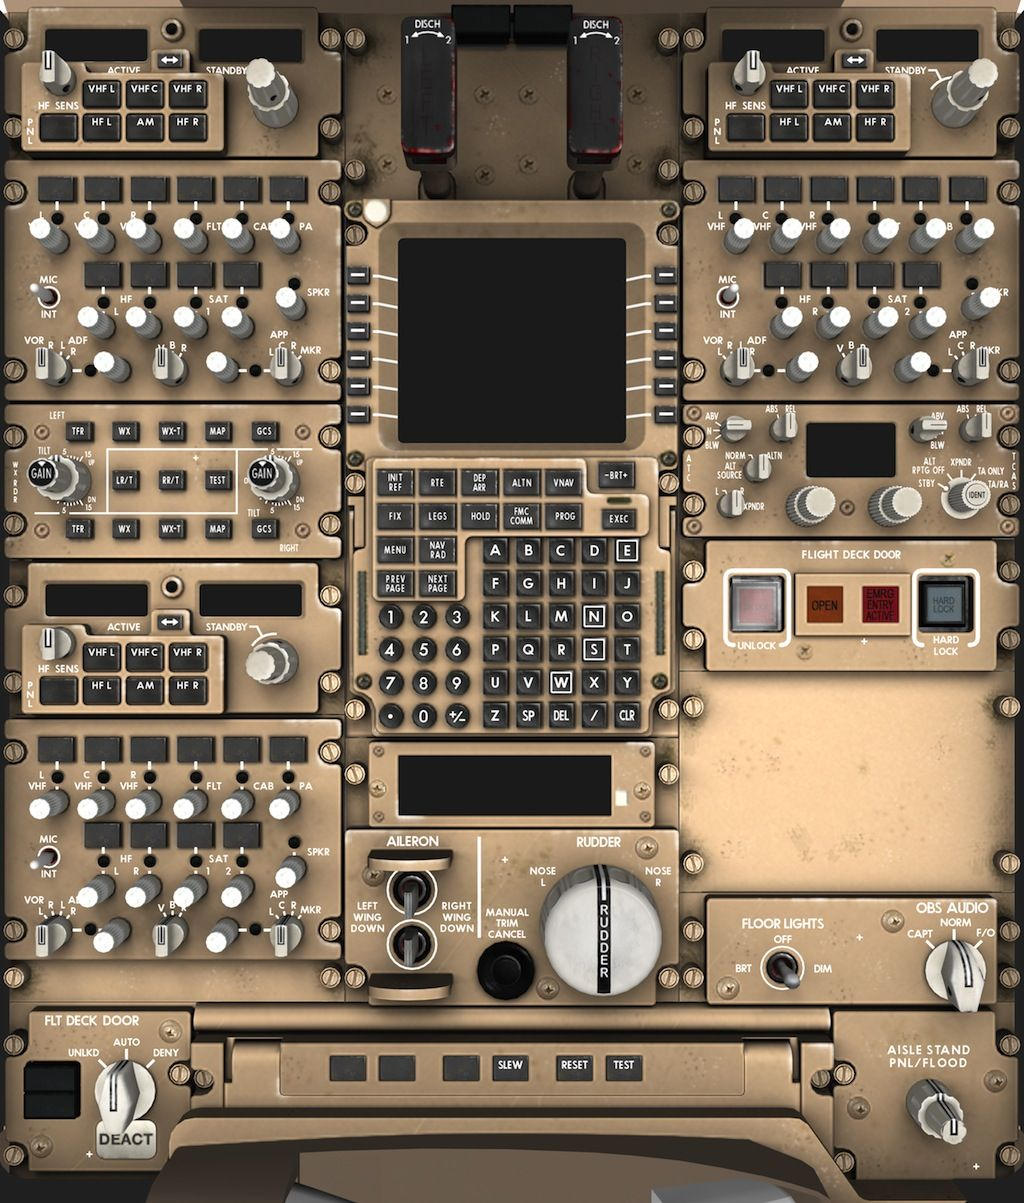 space shuttle cockpit layout -#main